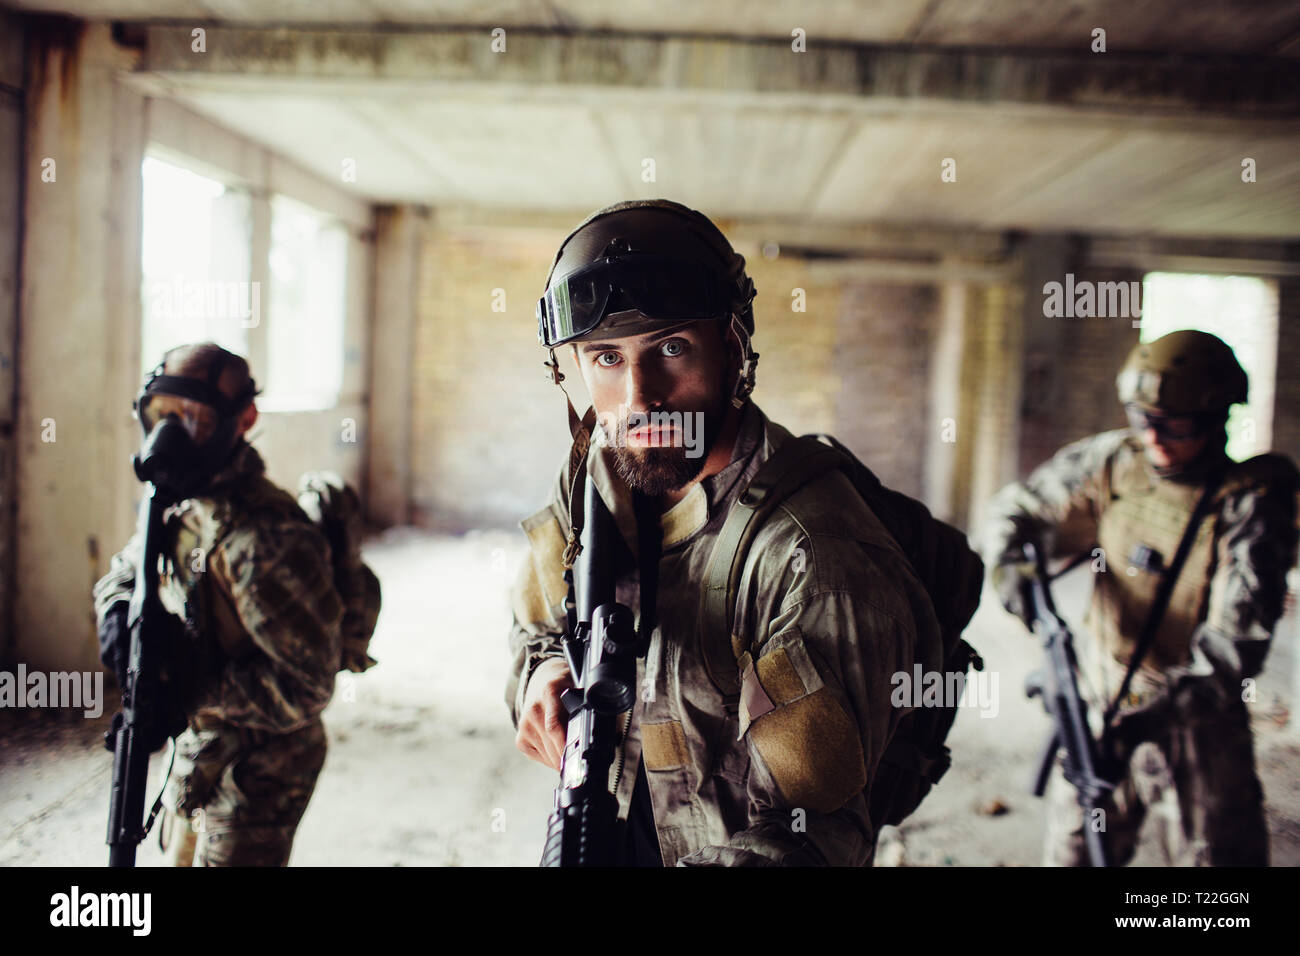 Warriors are standing in empty room. They are going forward very careful. Guys on the back wear special face masks. They are protect themselves with s - Stock Image